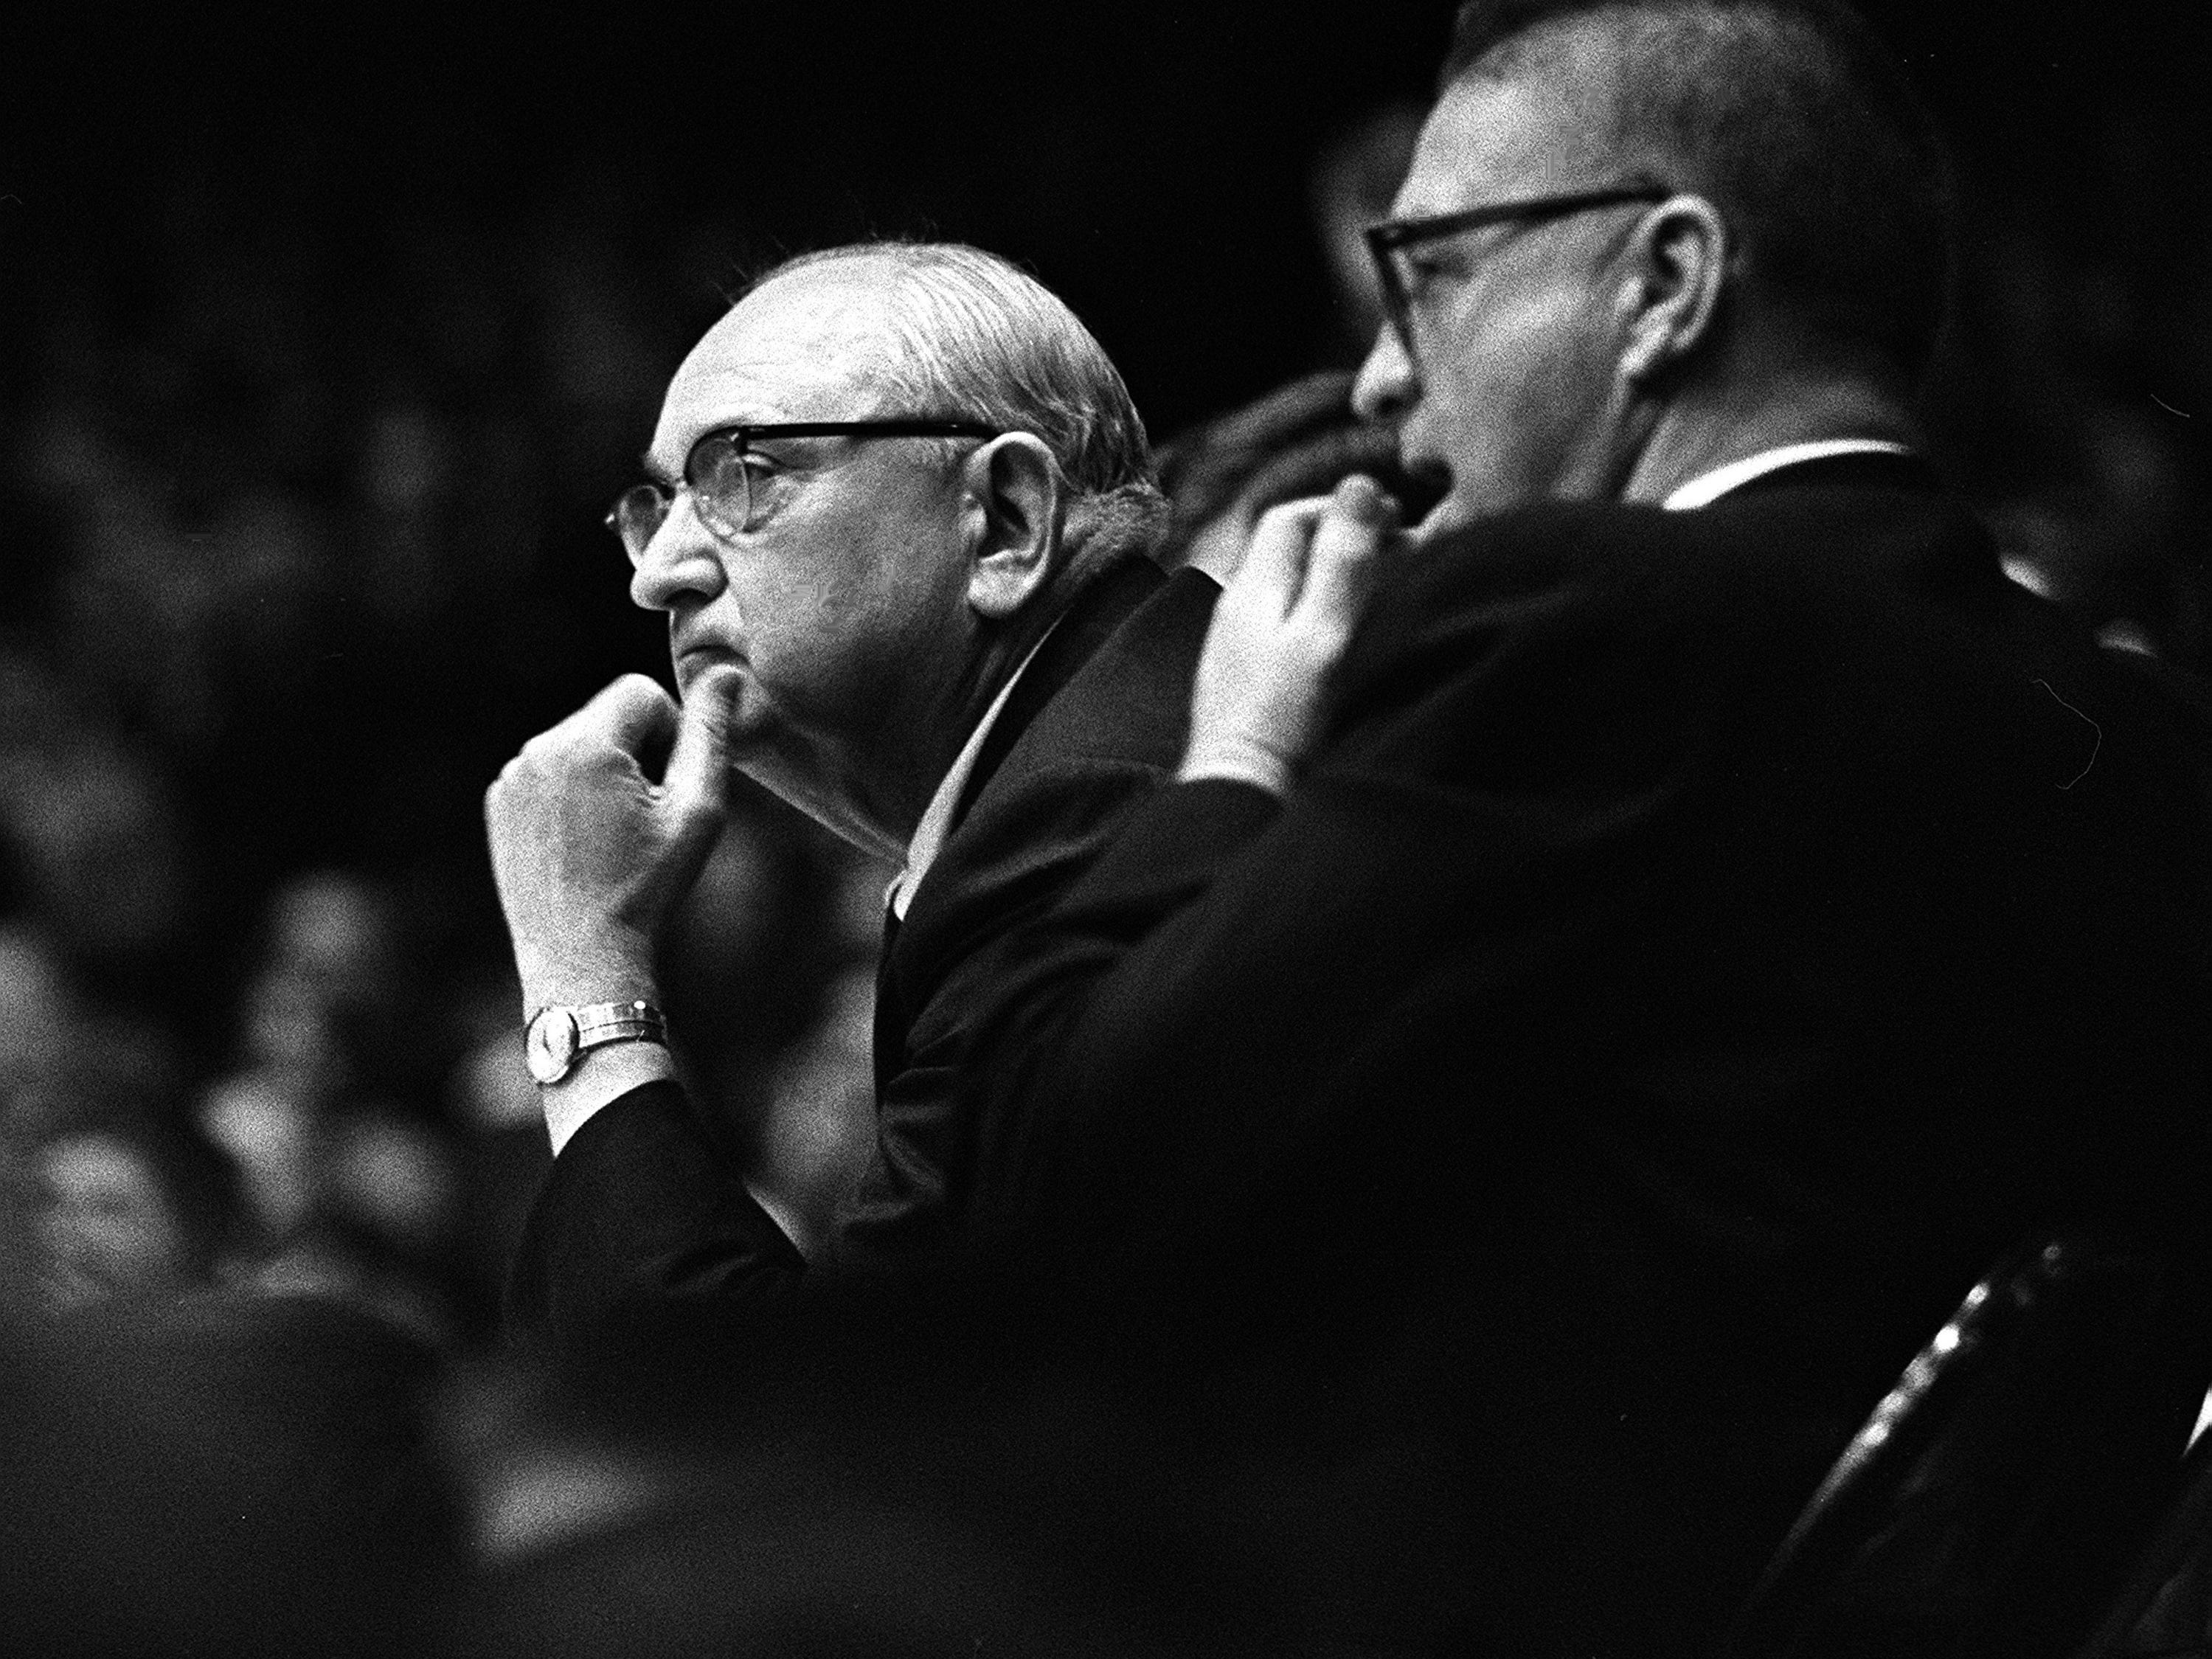 Kentucky head coach Adolph Rupp, left, keeps an eye on the action in their game at Vanderbilt. The undefeated Wildcats won 105-90 over the Commodores before more than 9,500 fans in Memorial Gym Feb. 2, 1966.